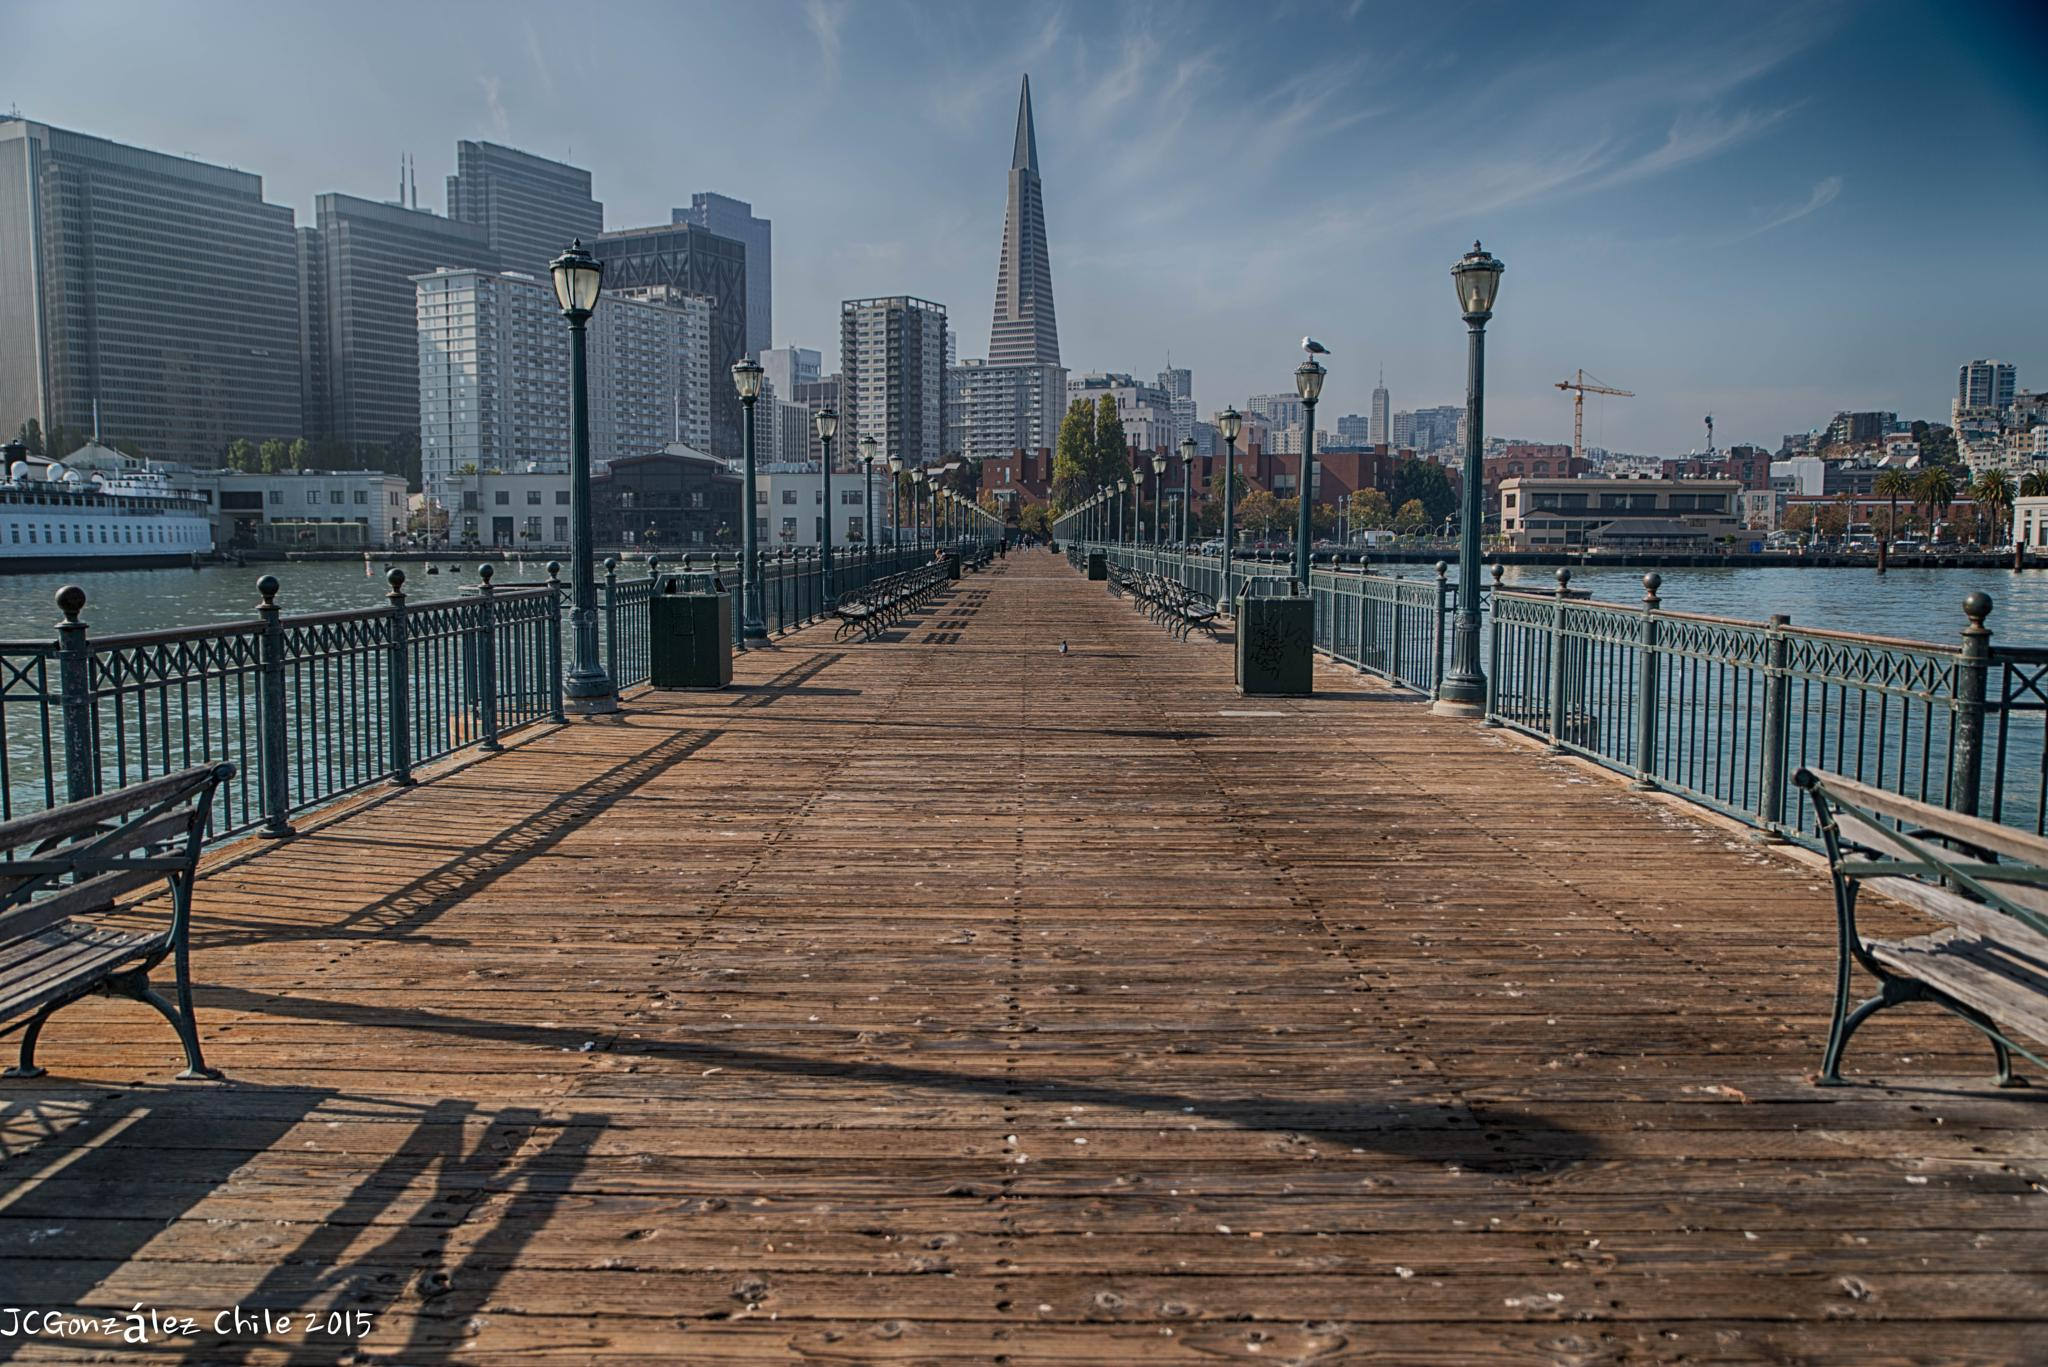 The Transamerica Pyramid is the tallest skyscraper in the San Francisco skyline. The building no lon by JuanCaPhotography